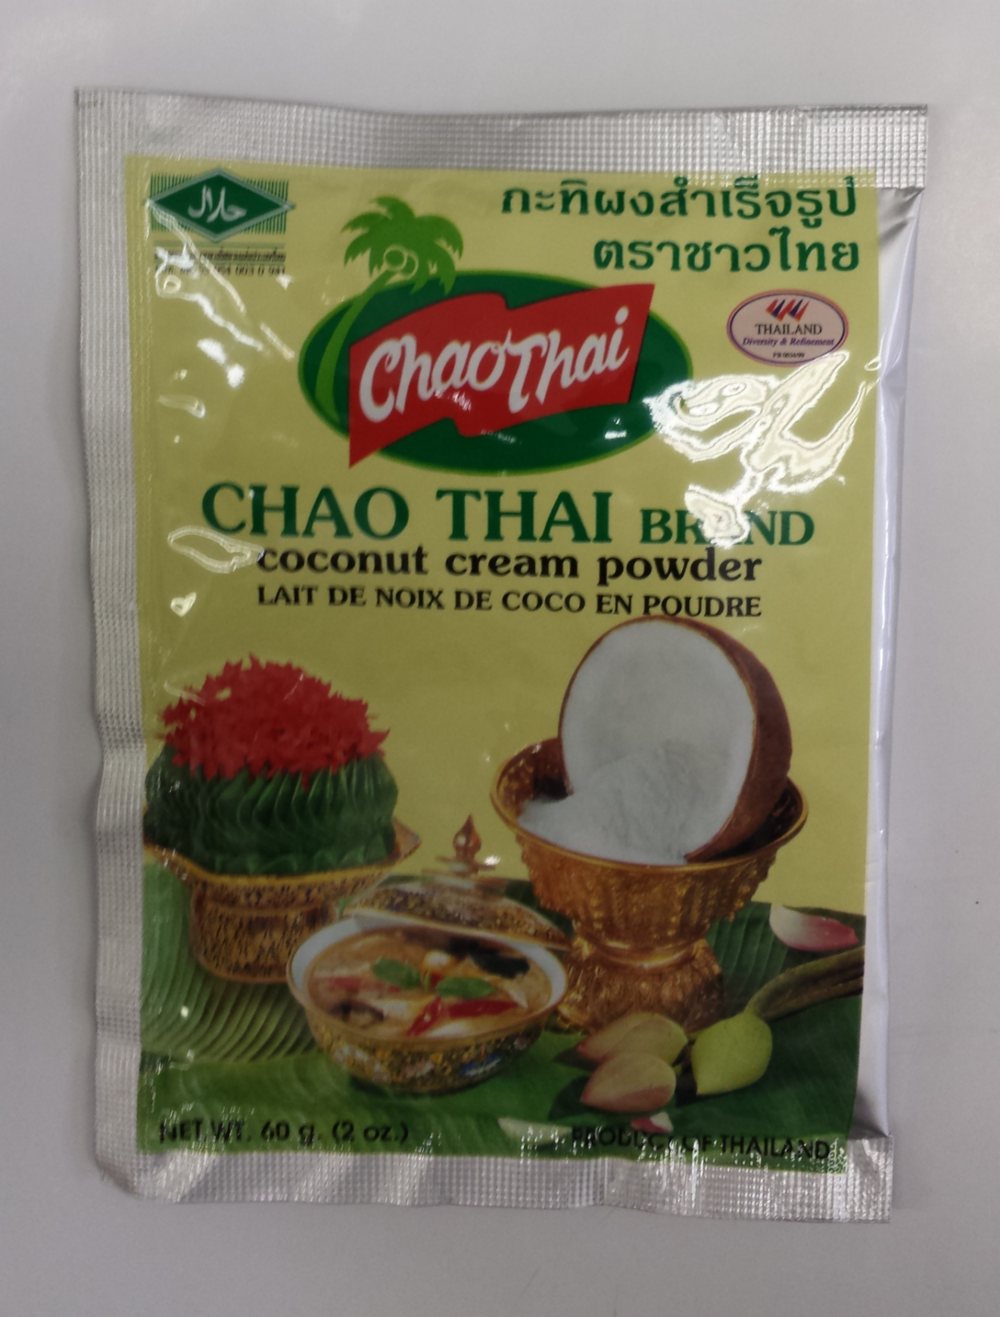 Coconut Cream Powder    Chao Thai   CM11970 100x2 oz  CM11970B 10x2 oz